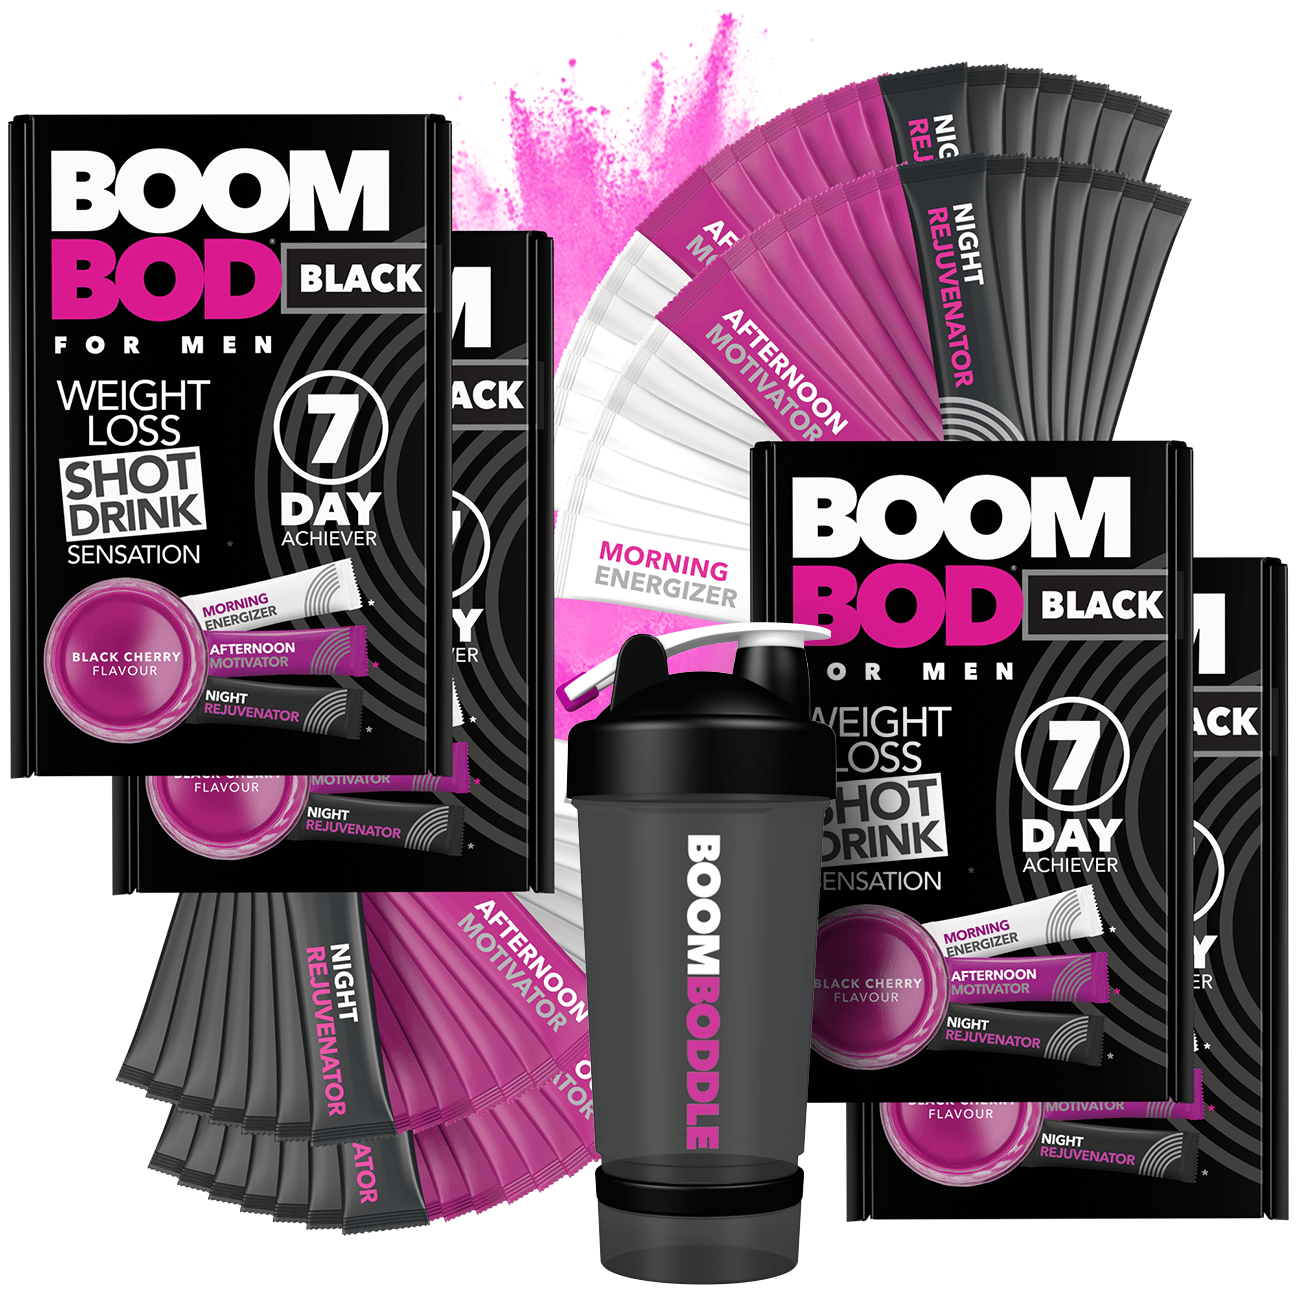 Boombod 28 Day Achiever Men's with 20oz Black Shaker Bottle | Black Cherry | Weight Loss Shot Drink